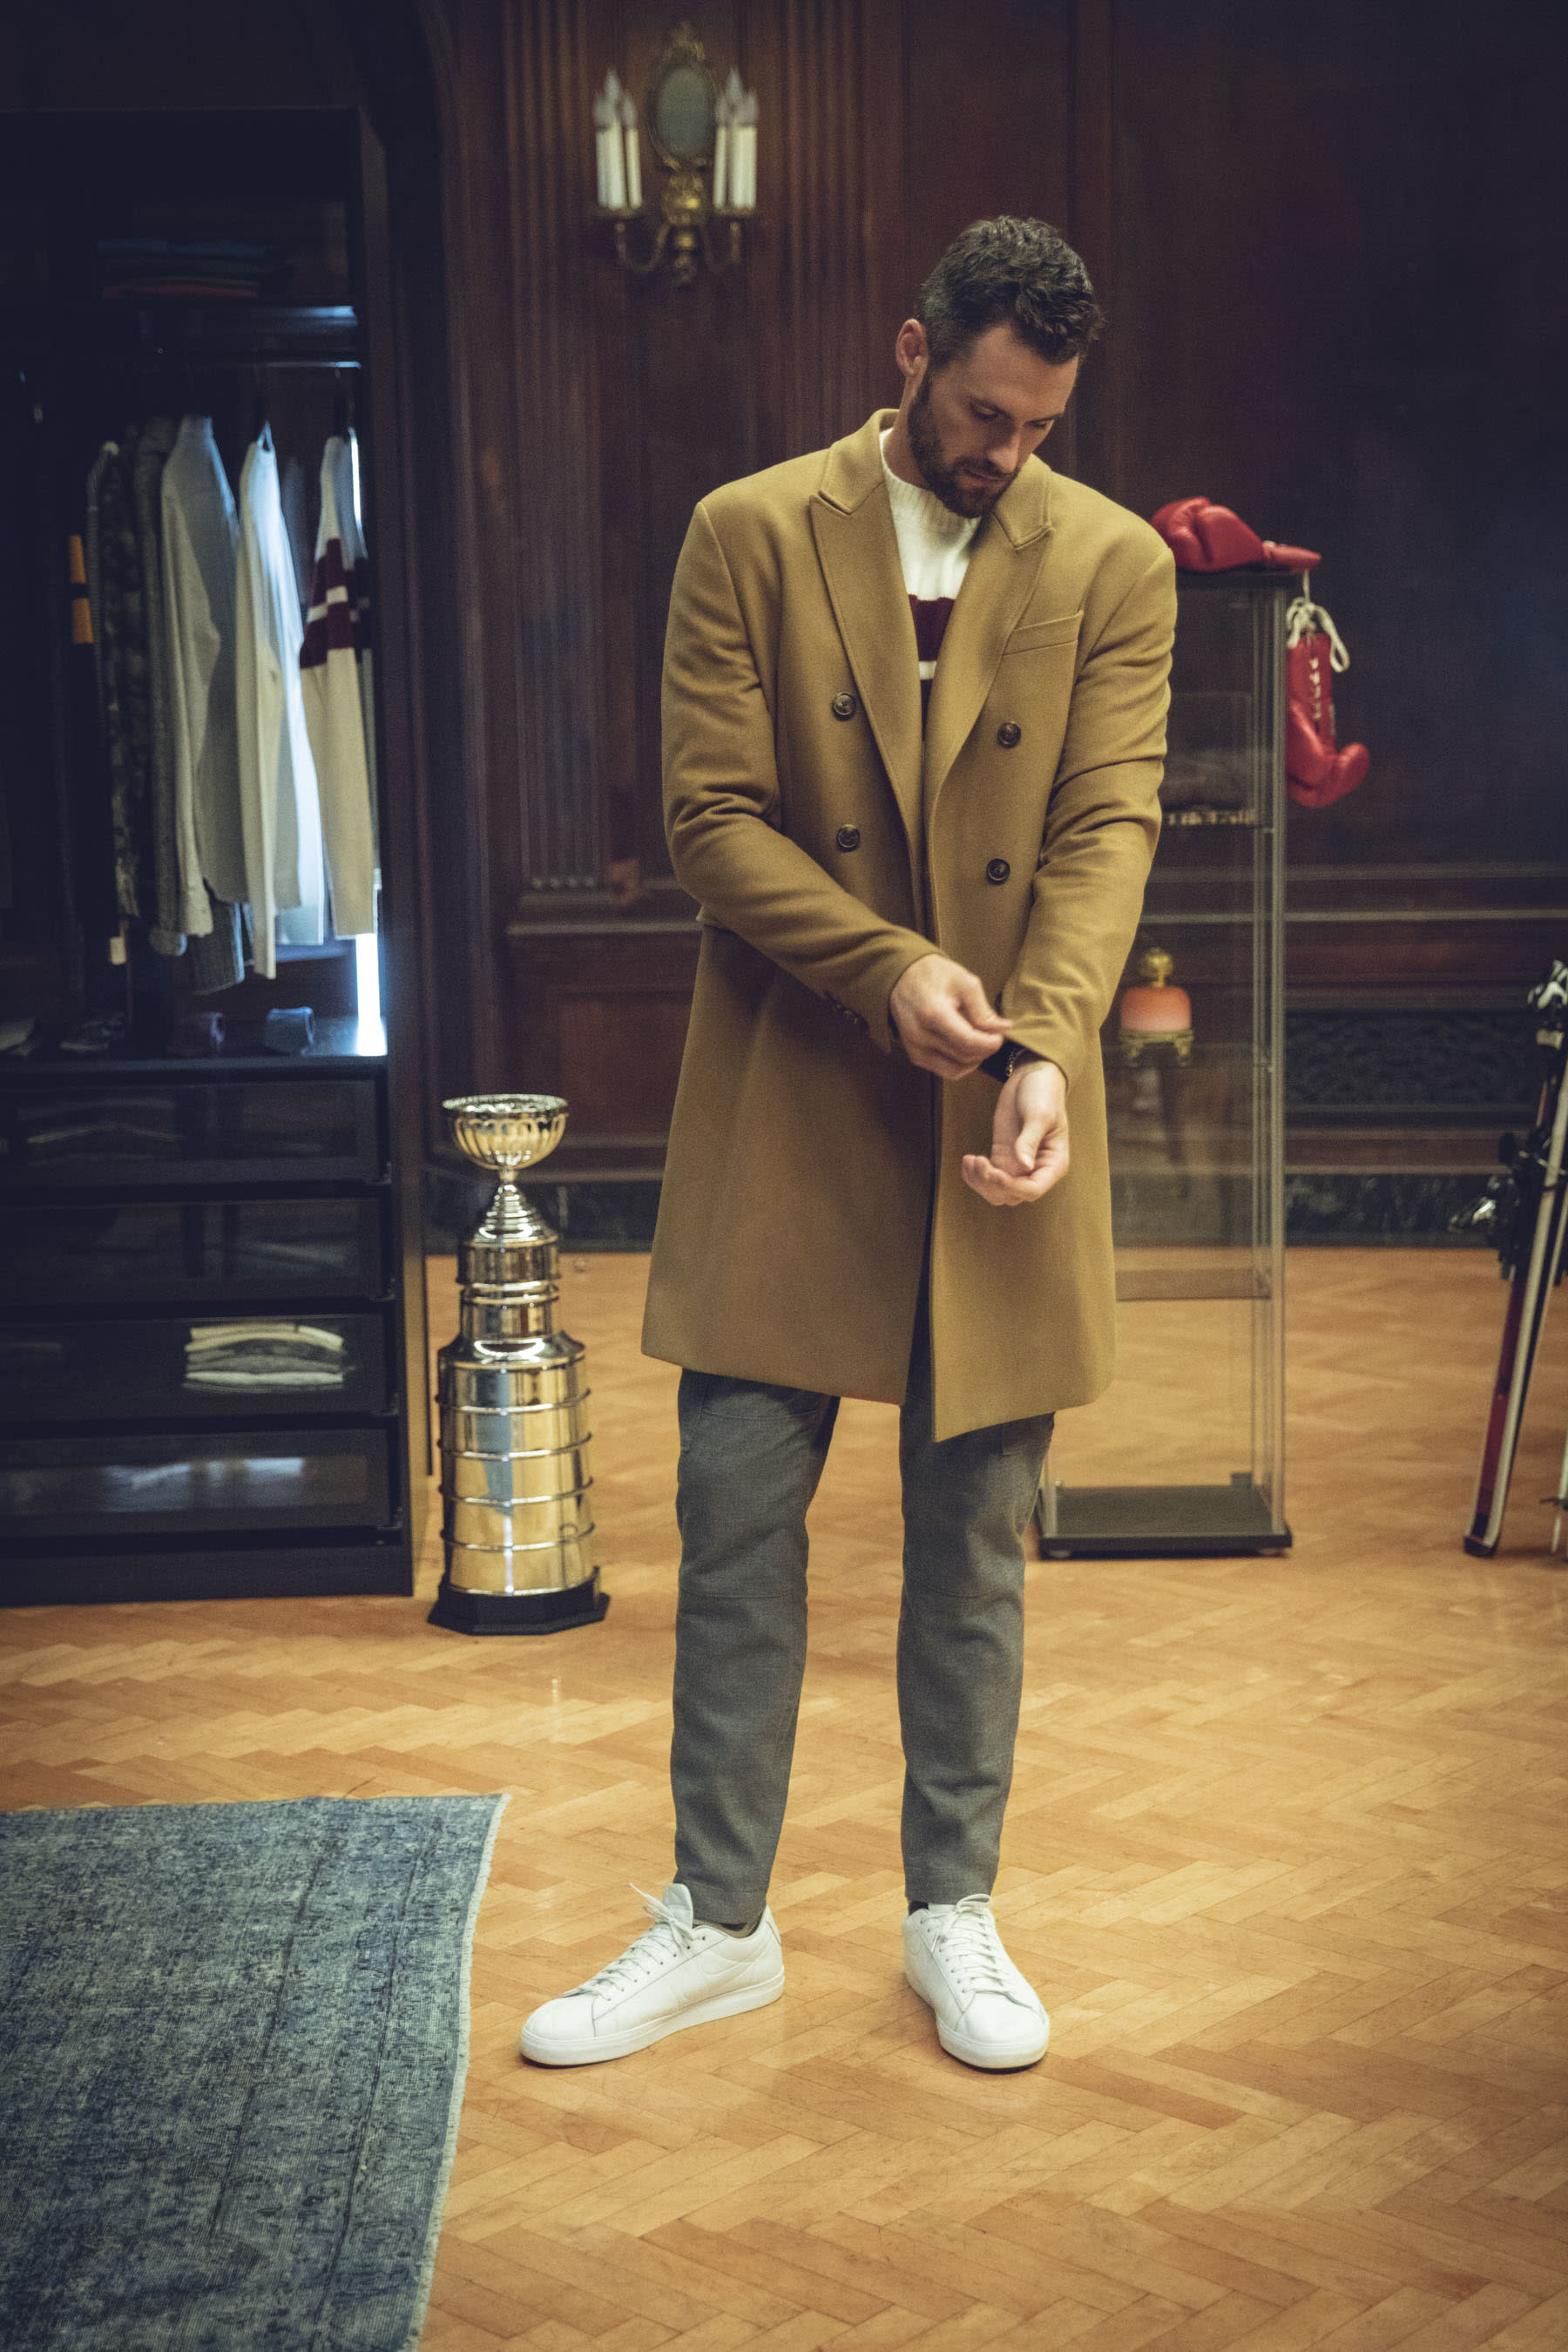 539c78f81946b NBA Star Kevin Love Makes Debut as Designer with First Banana Republic  Collection